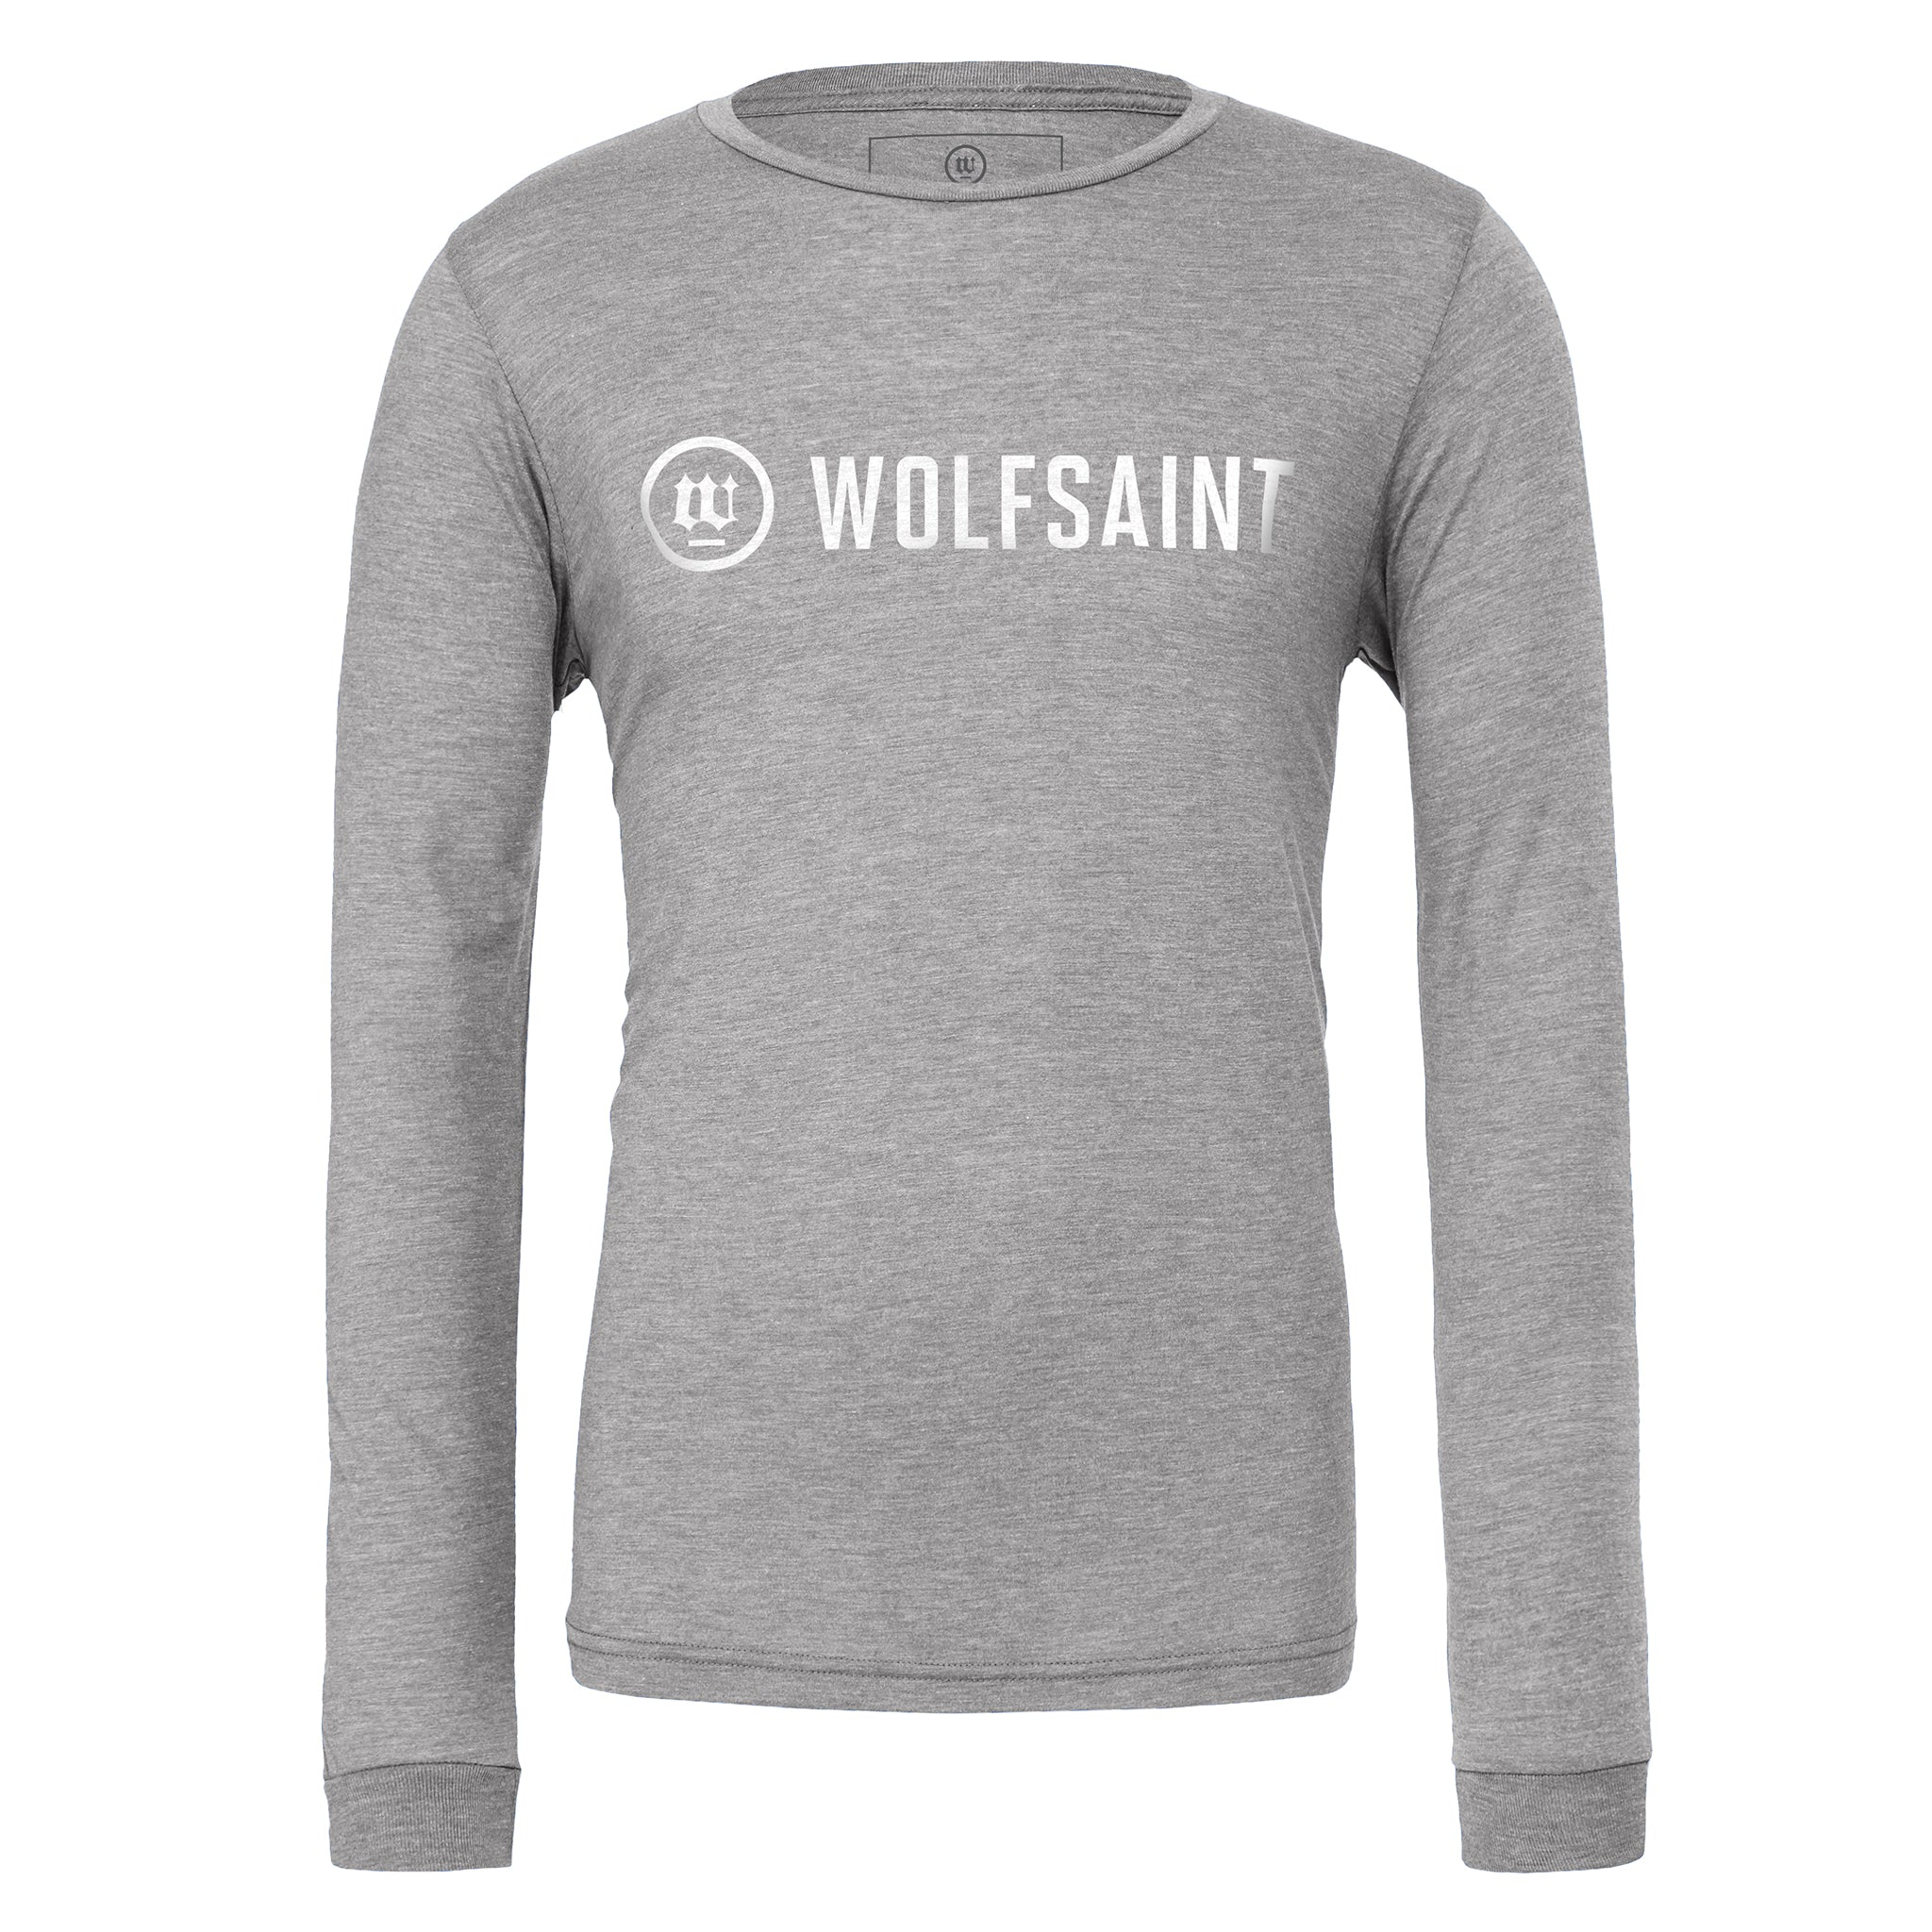 A simple, elegant unisex long sleeved t-shirt in Athletic Heather Gray, with the fashionable WOLFSAINT logo branding across the chest in white. From Wolfsaint.net